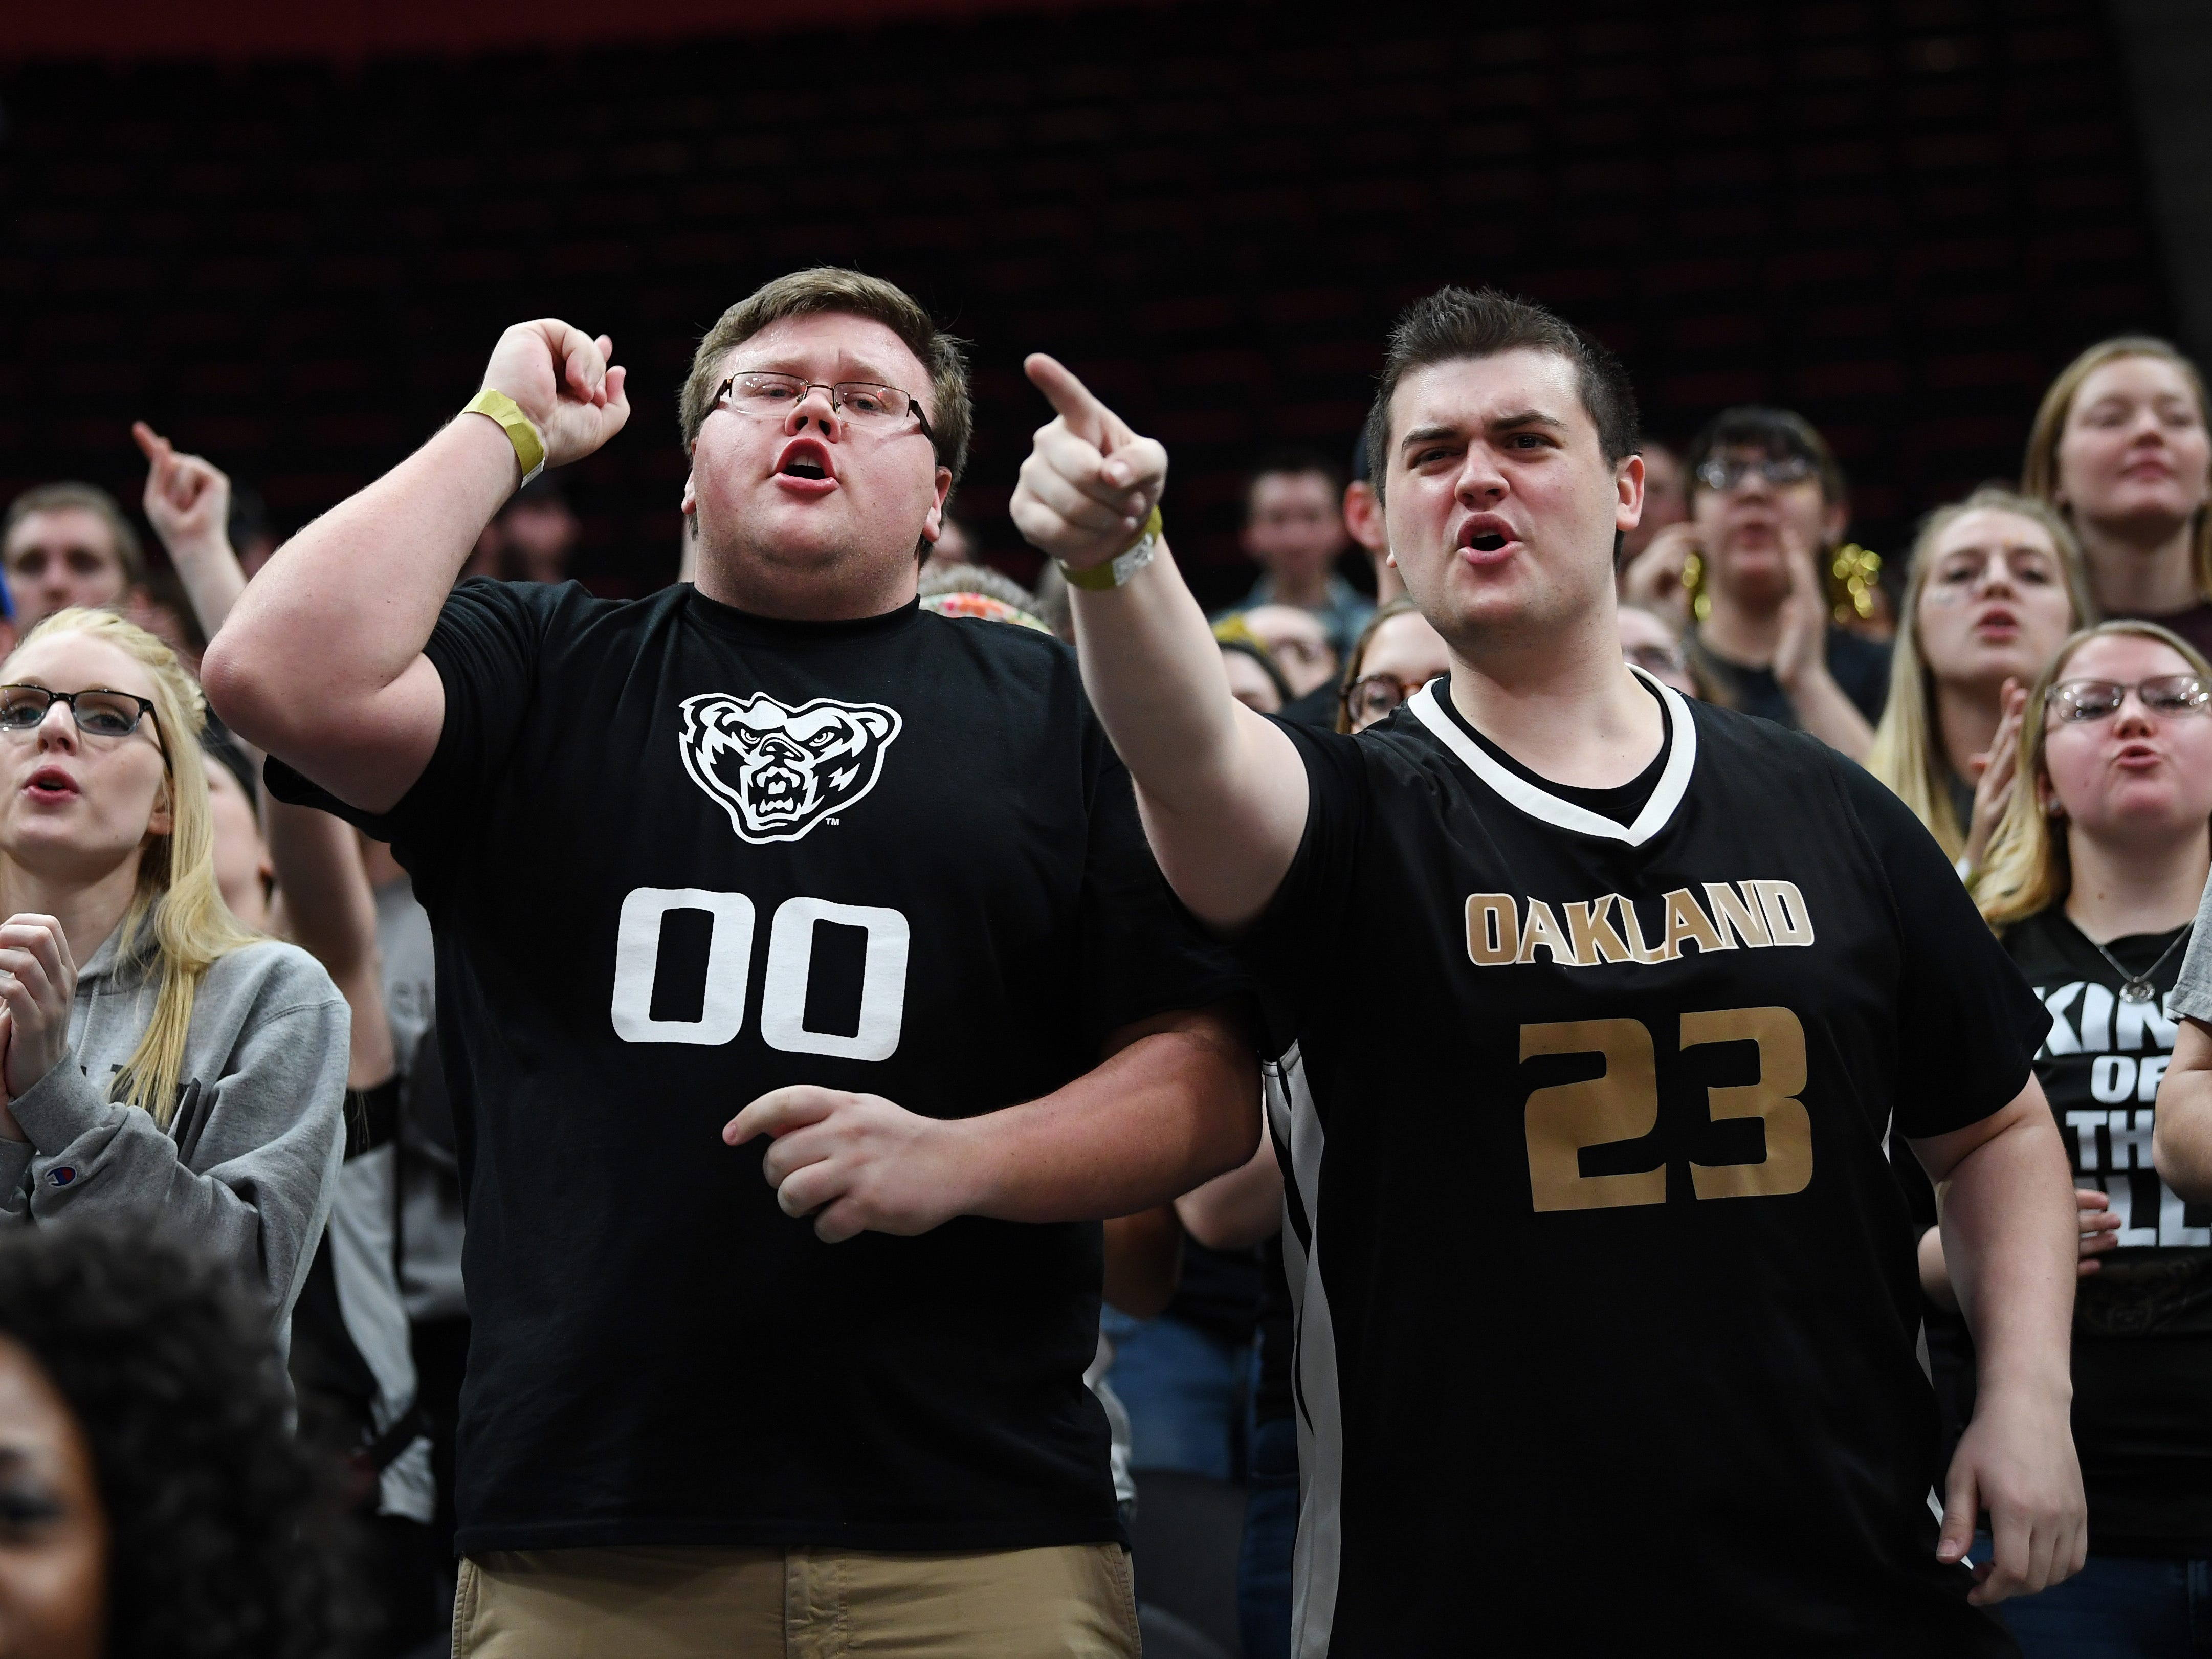 Oakland Golden Grizzlies fans cheer on their team as they played against the Northern Kentucky Norse during the first half.